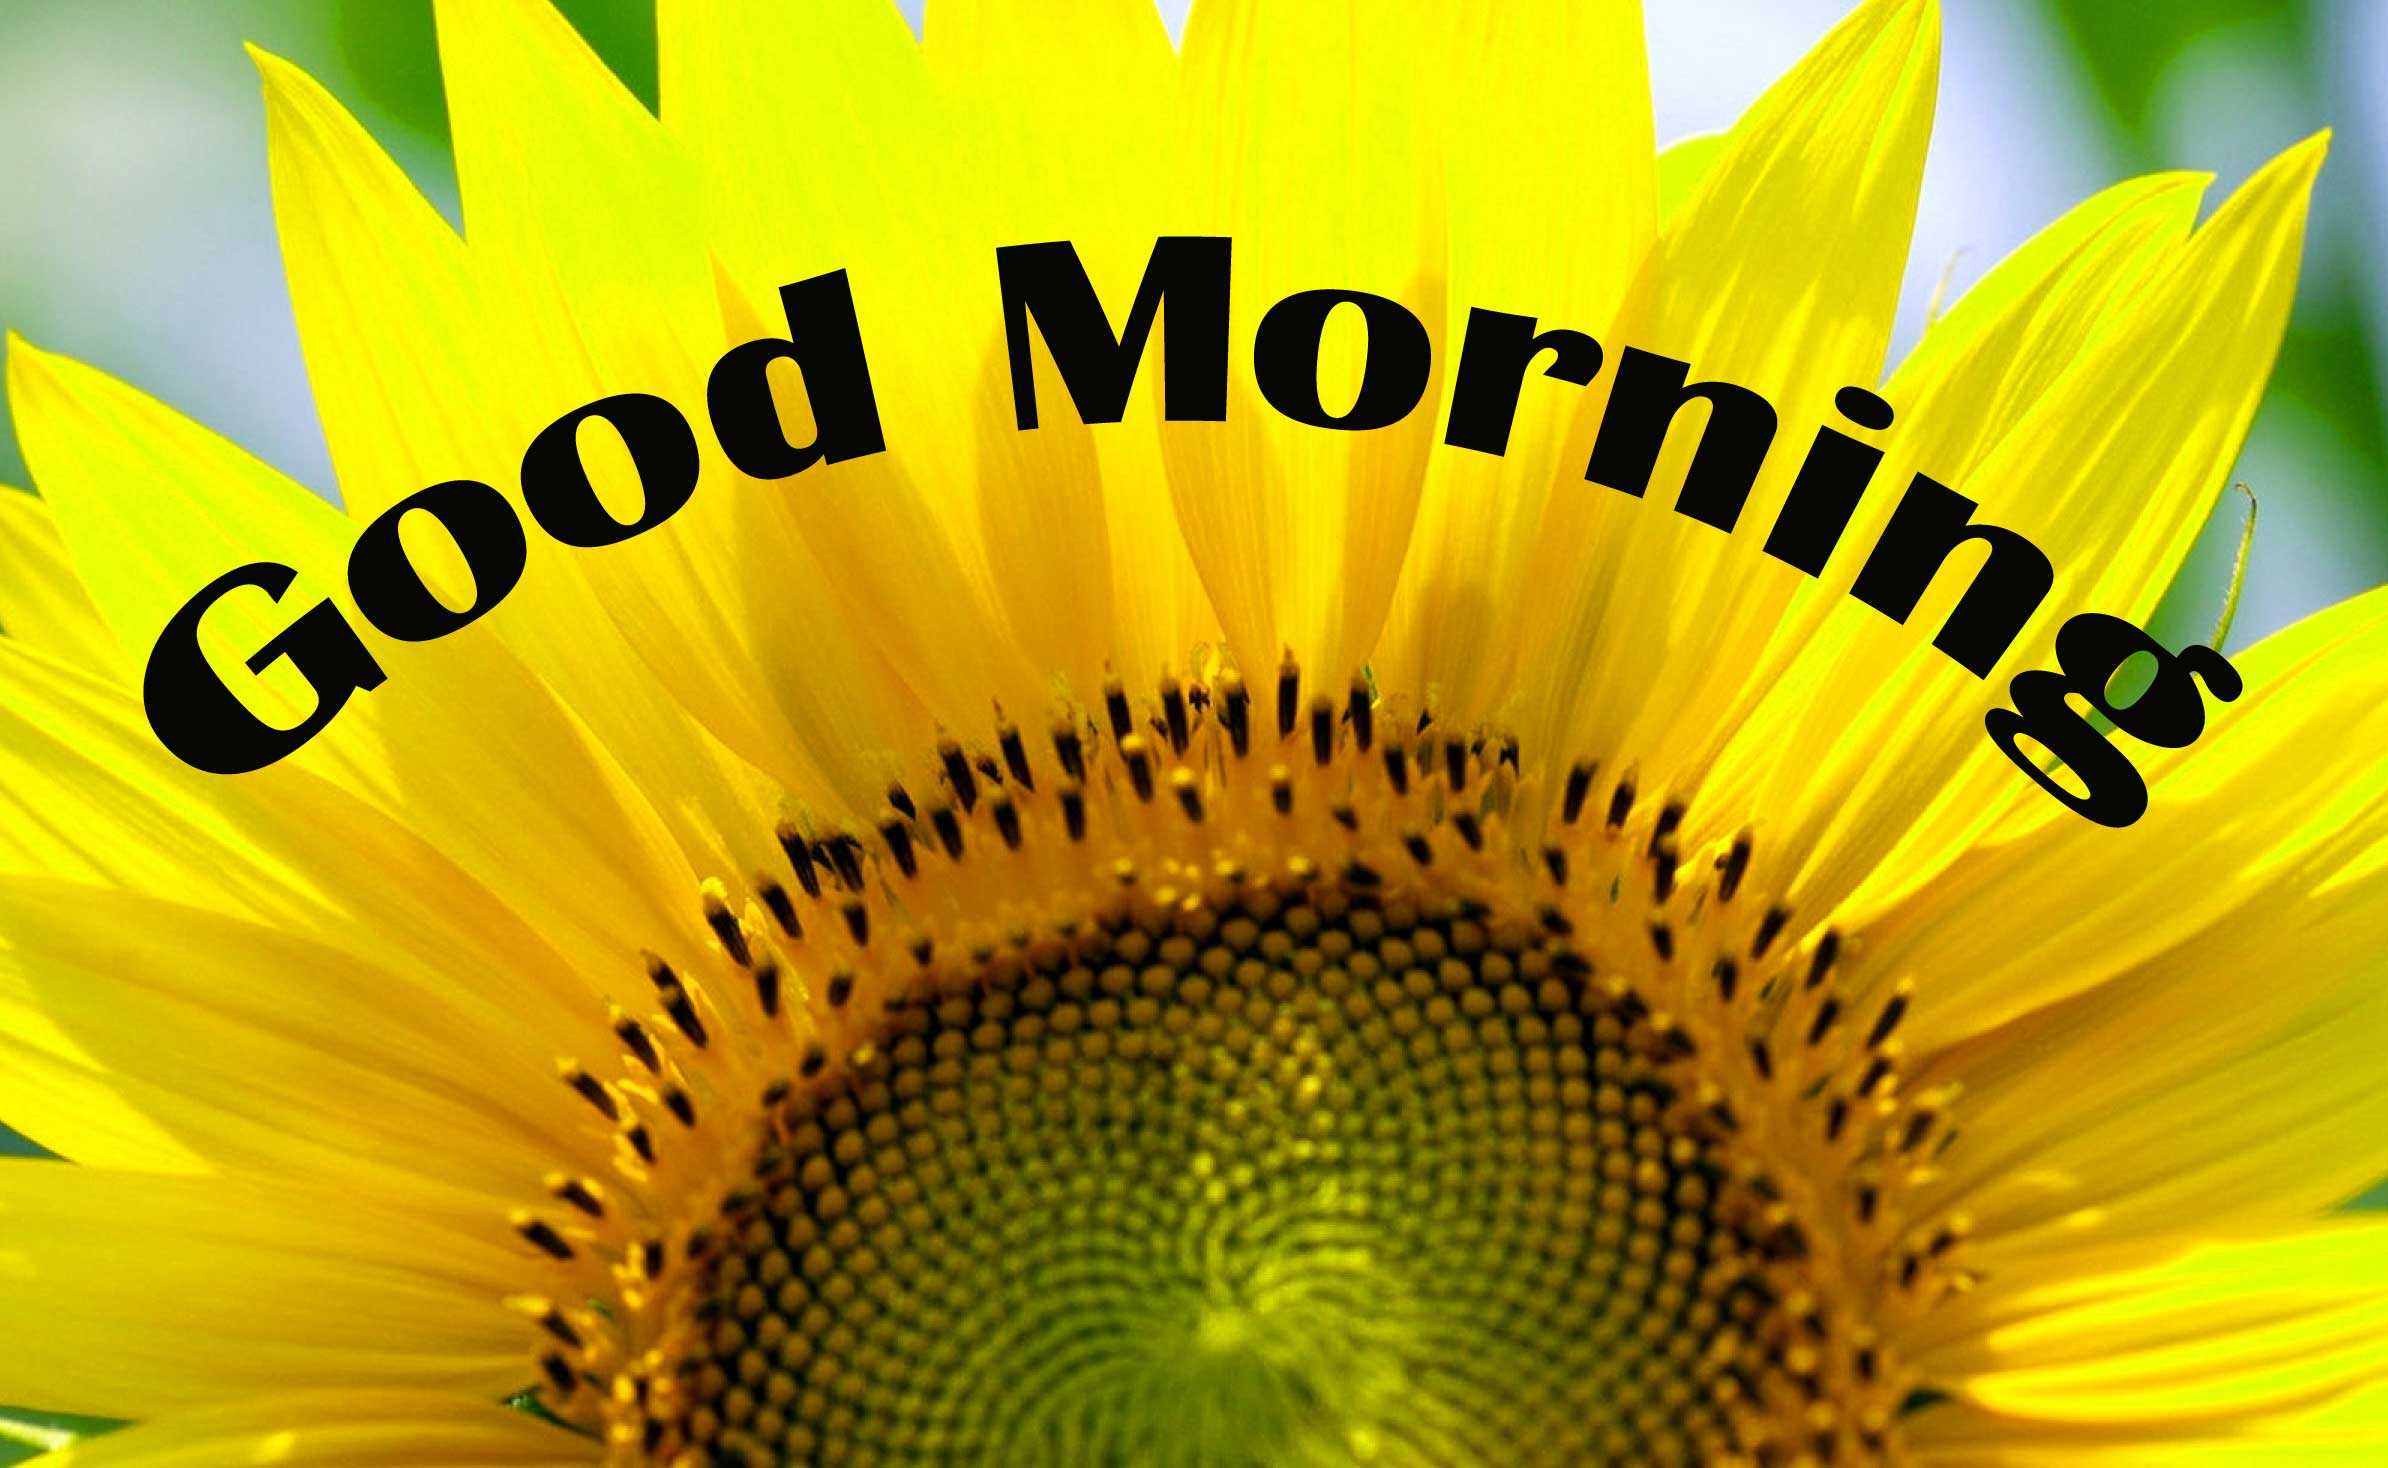 Good Morning Sunflower Images Photo for Facebook